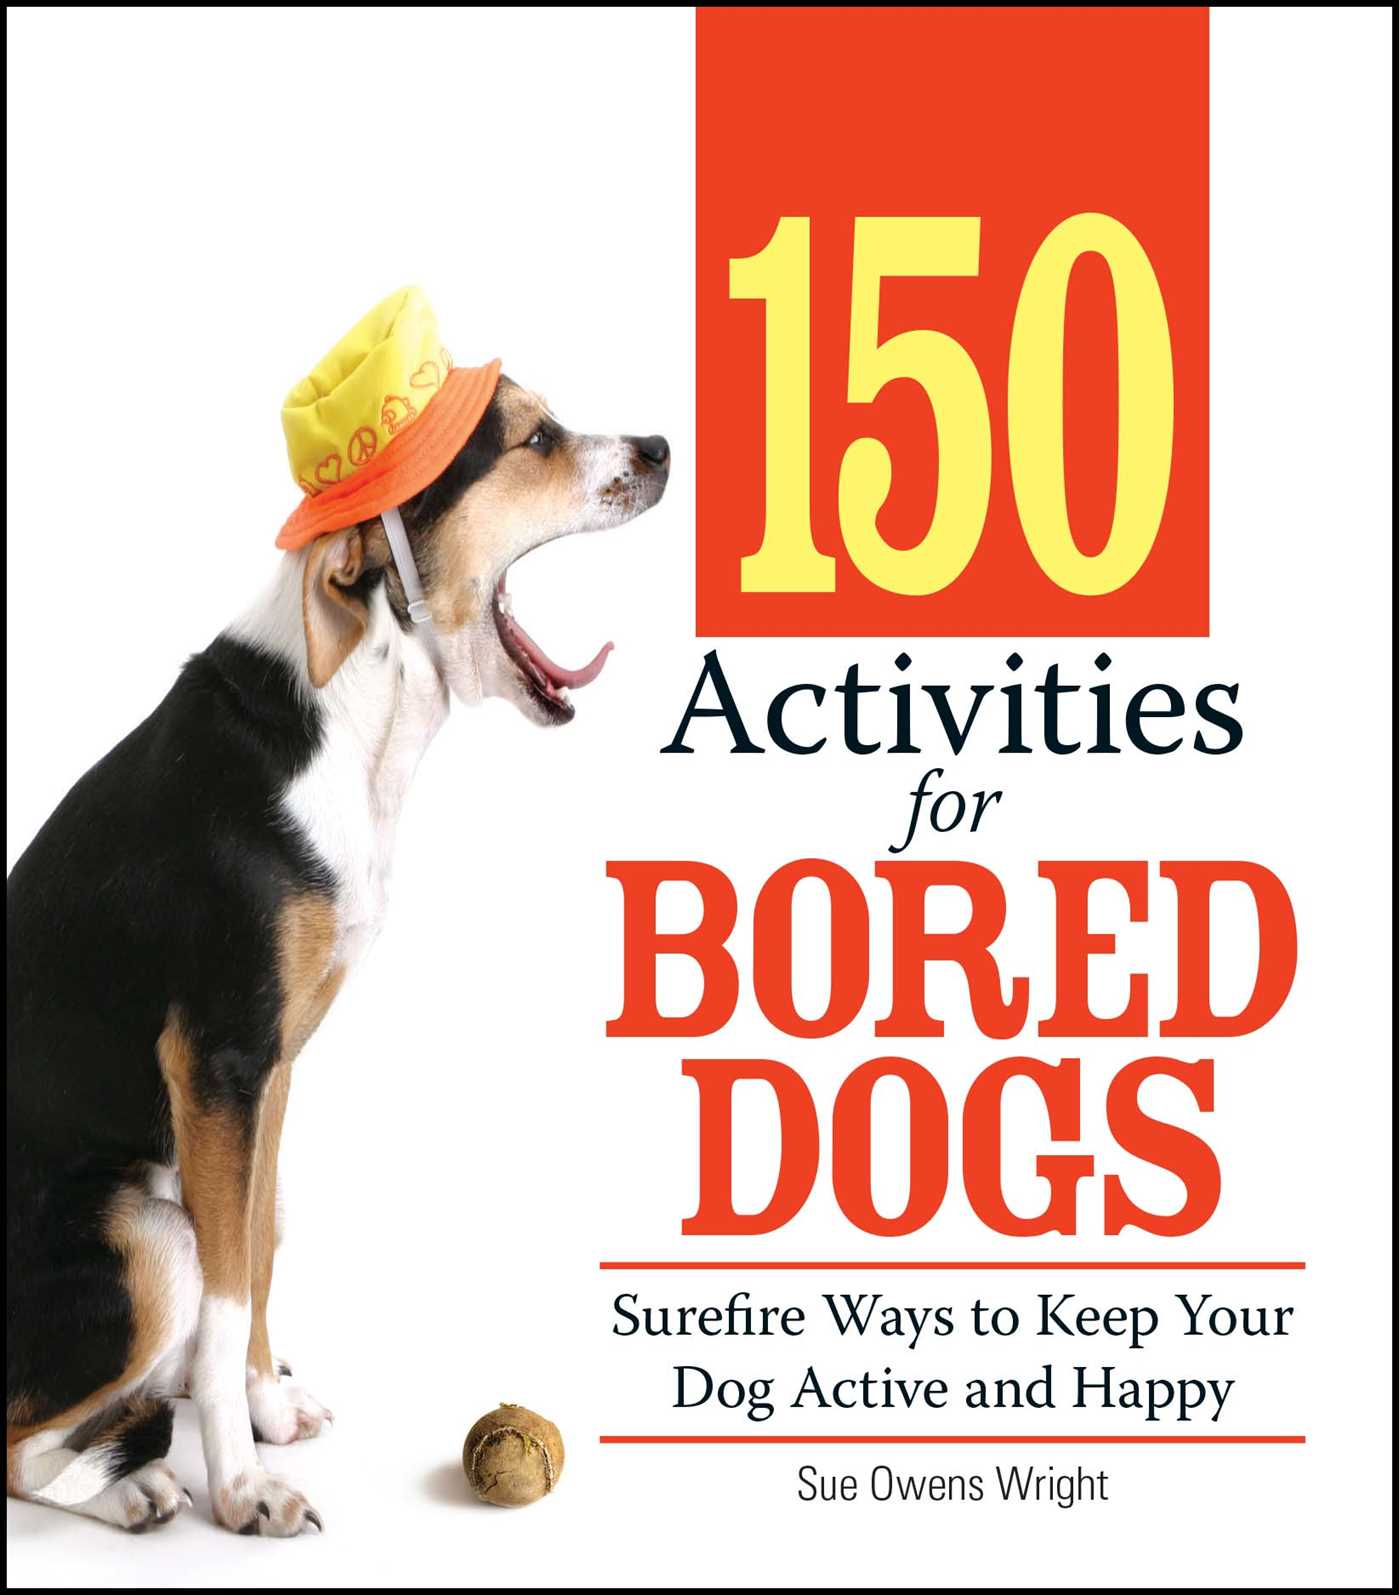 150 Activities For Bored Dogs Surefire Ways to Keep Your Dog Active and Happy